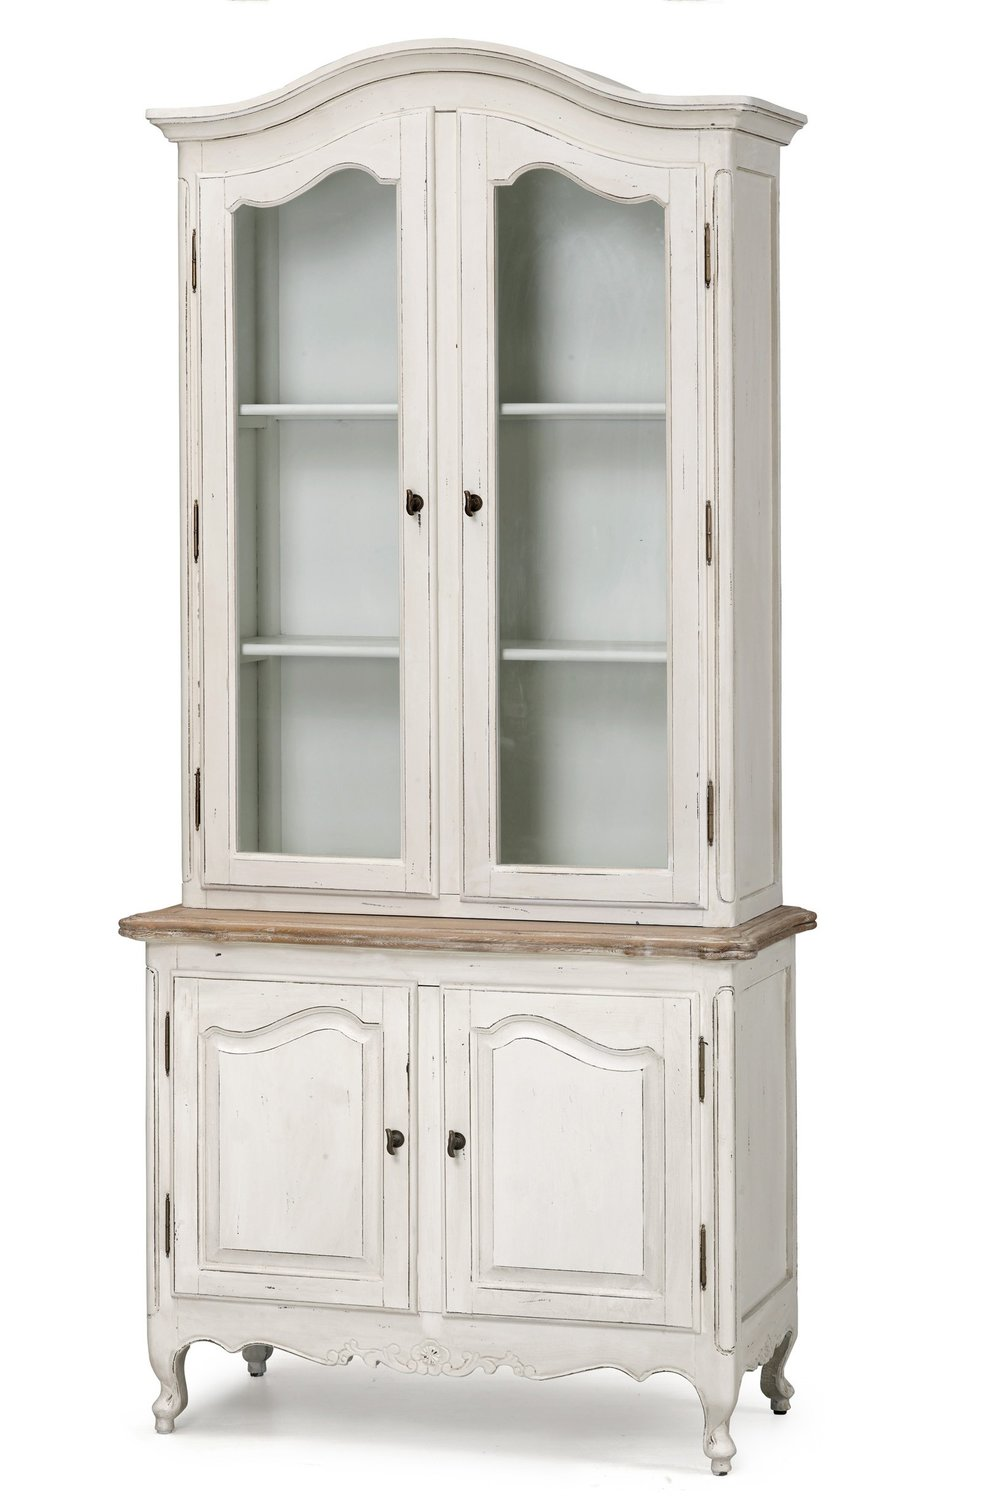 french_provincial_display_cupboard.jpg